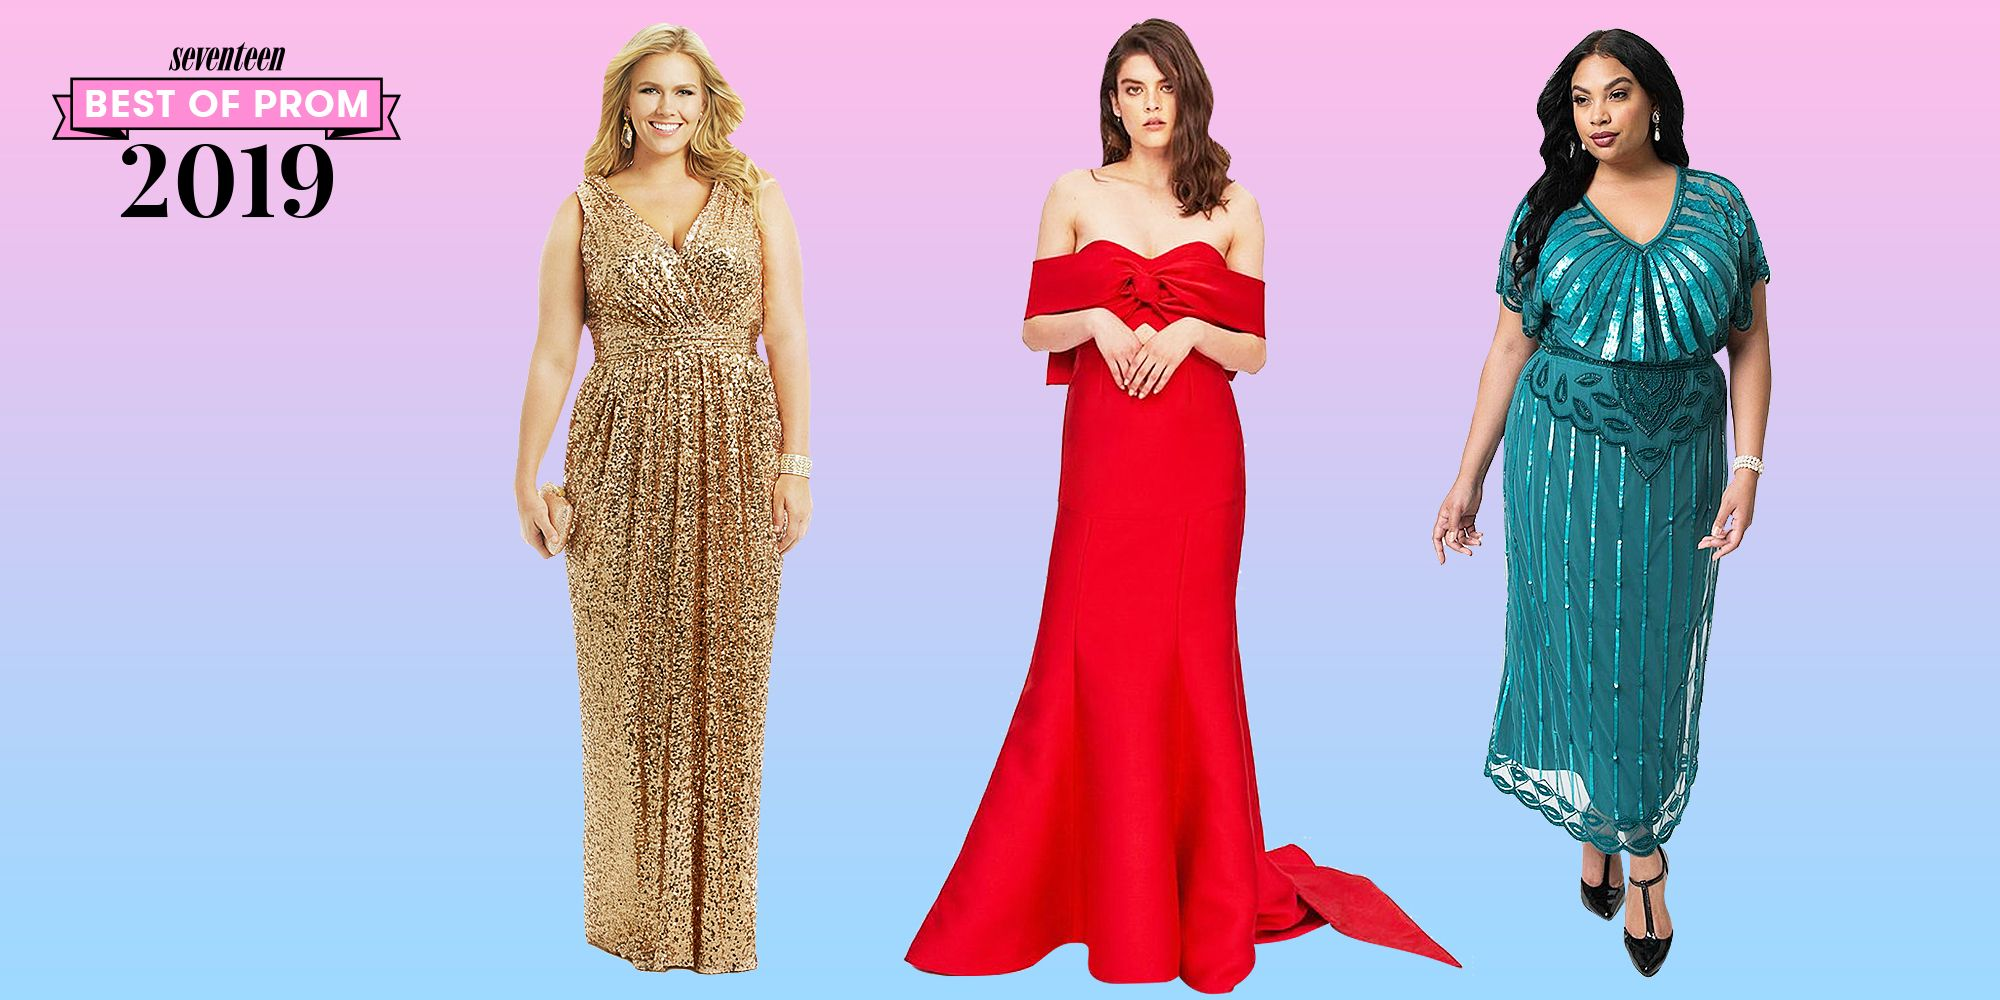 What does an vintage dresses mean. Does it mean a high price dress or mean luxury dress?